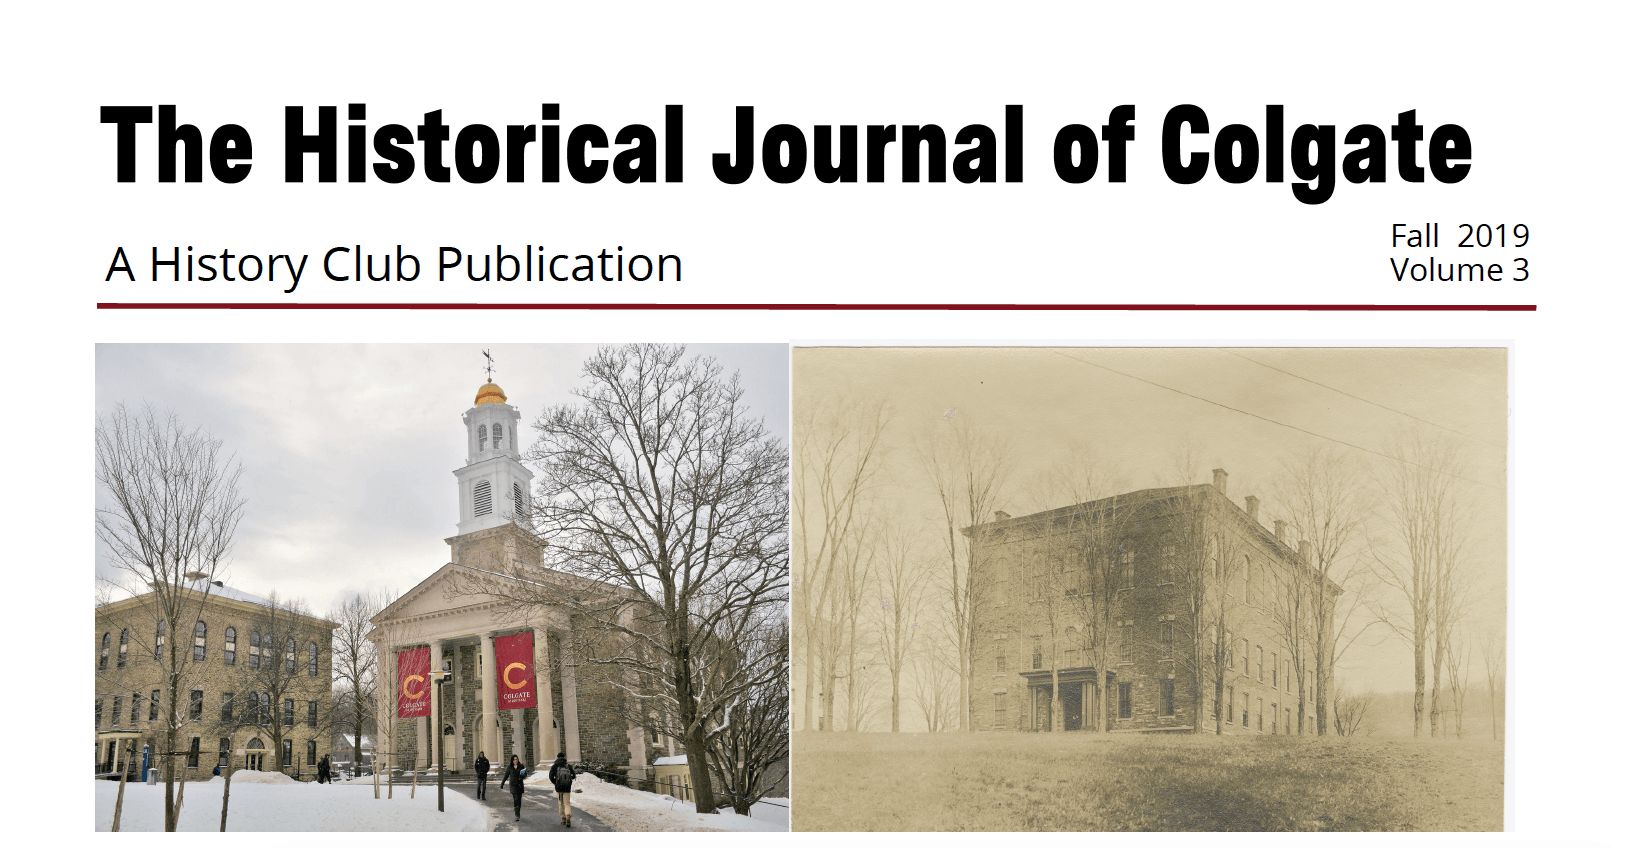 The Historical Journal of Colgate, Volume 3